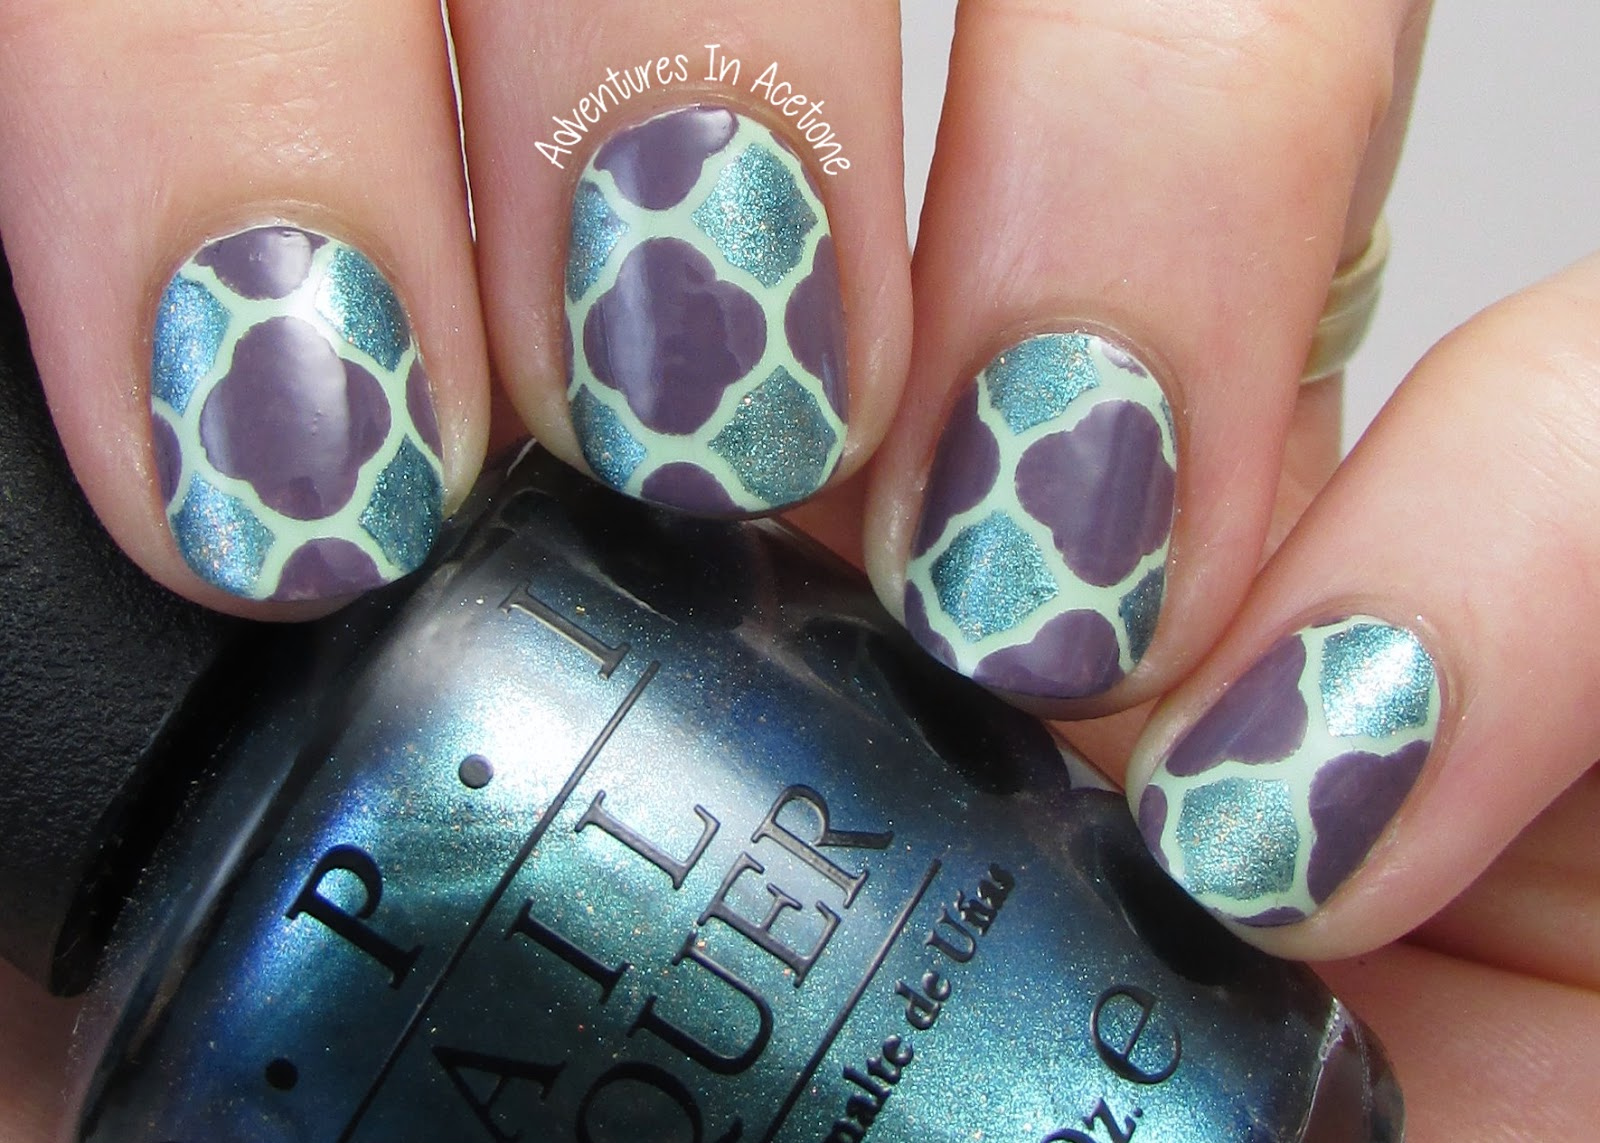 Quatrefoil Nail Art With Opi Hawaii Adventures In Acetone A Little While Back Manicurator Did This